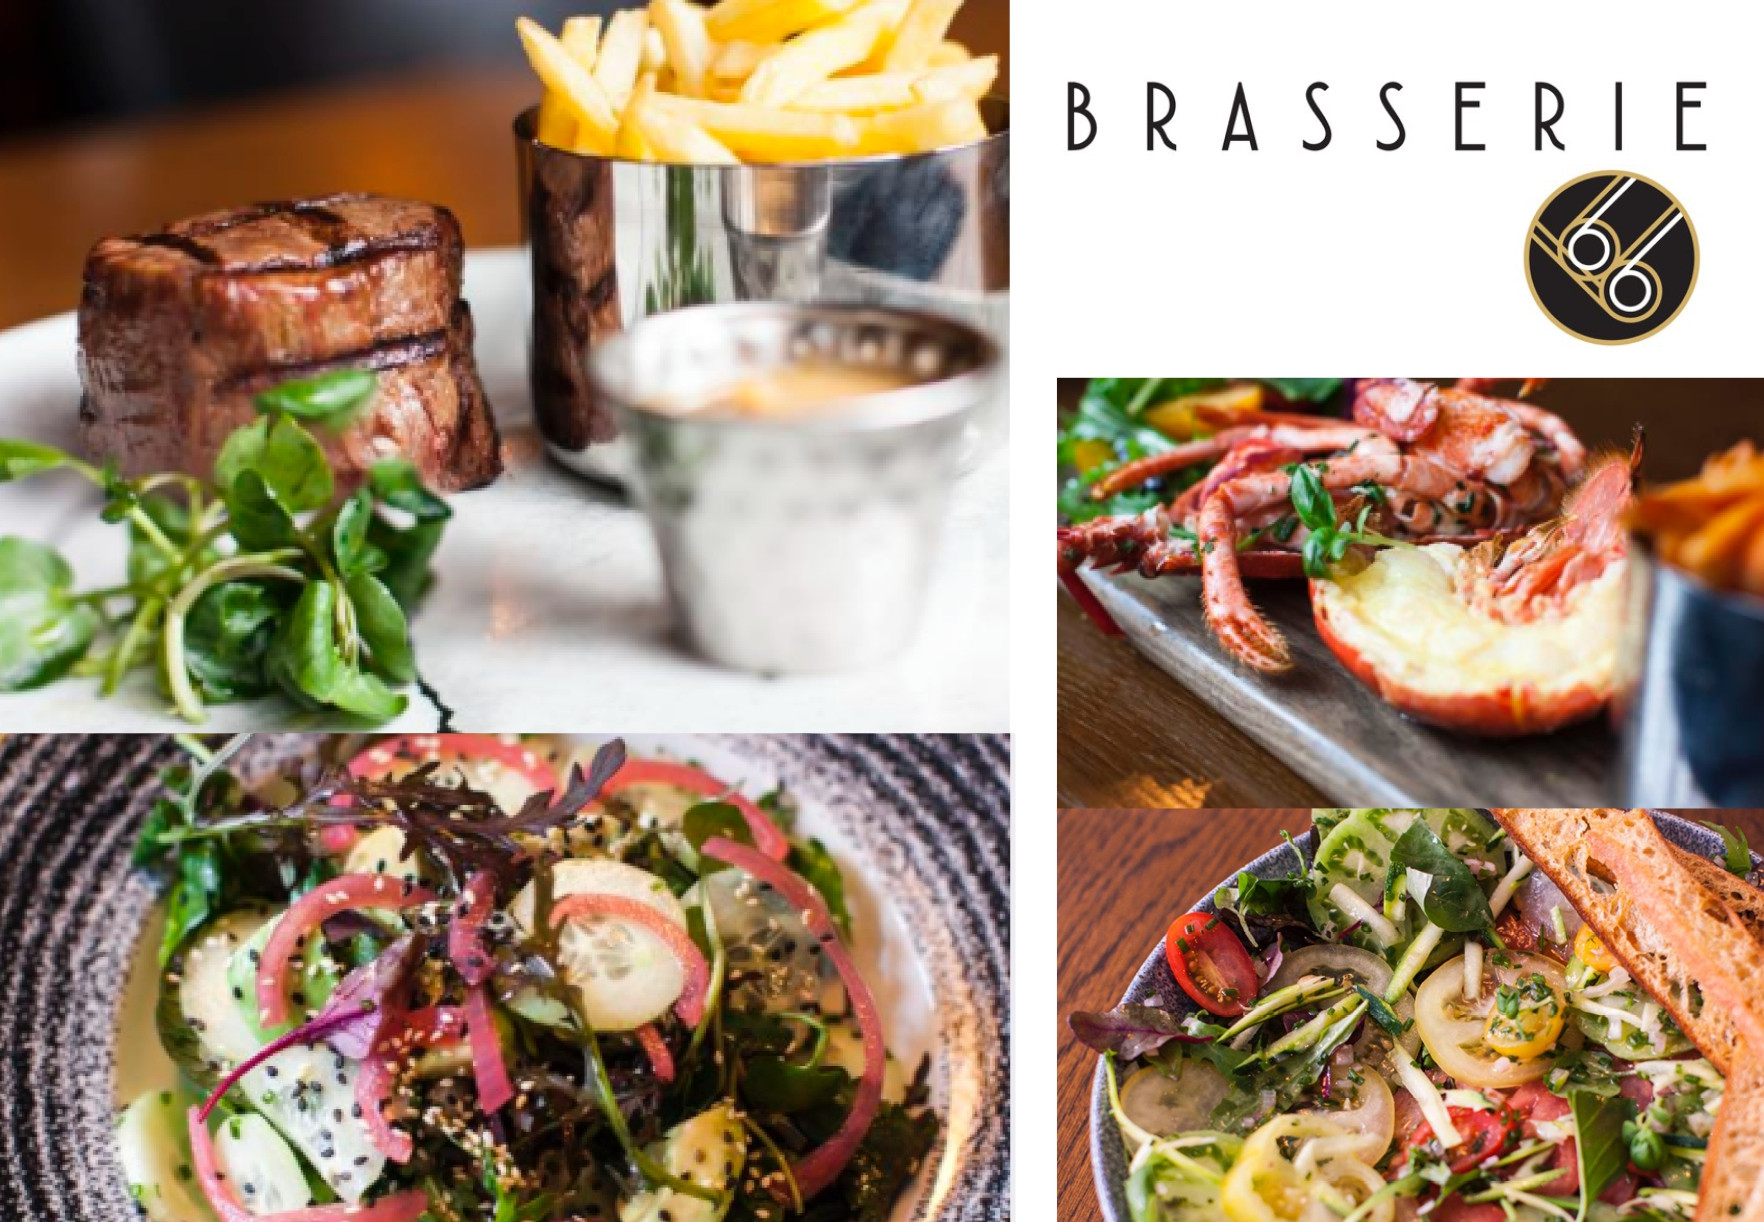 3 Course Meal Wine & Prosecco in Brasserie 66